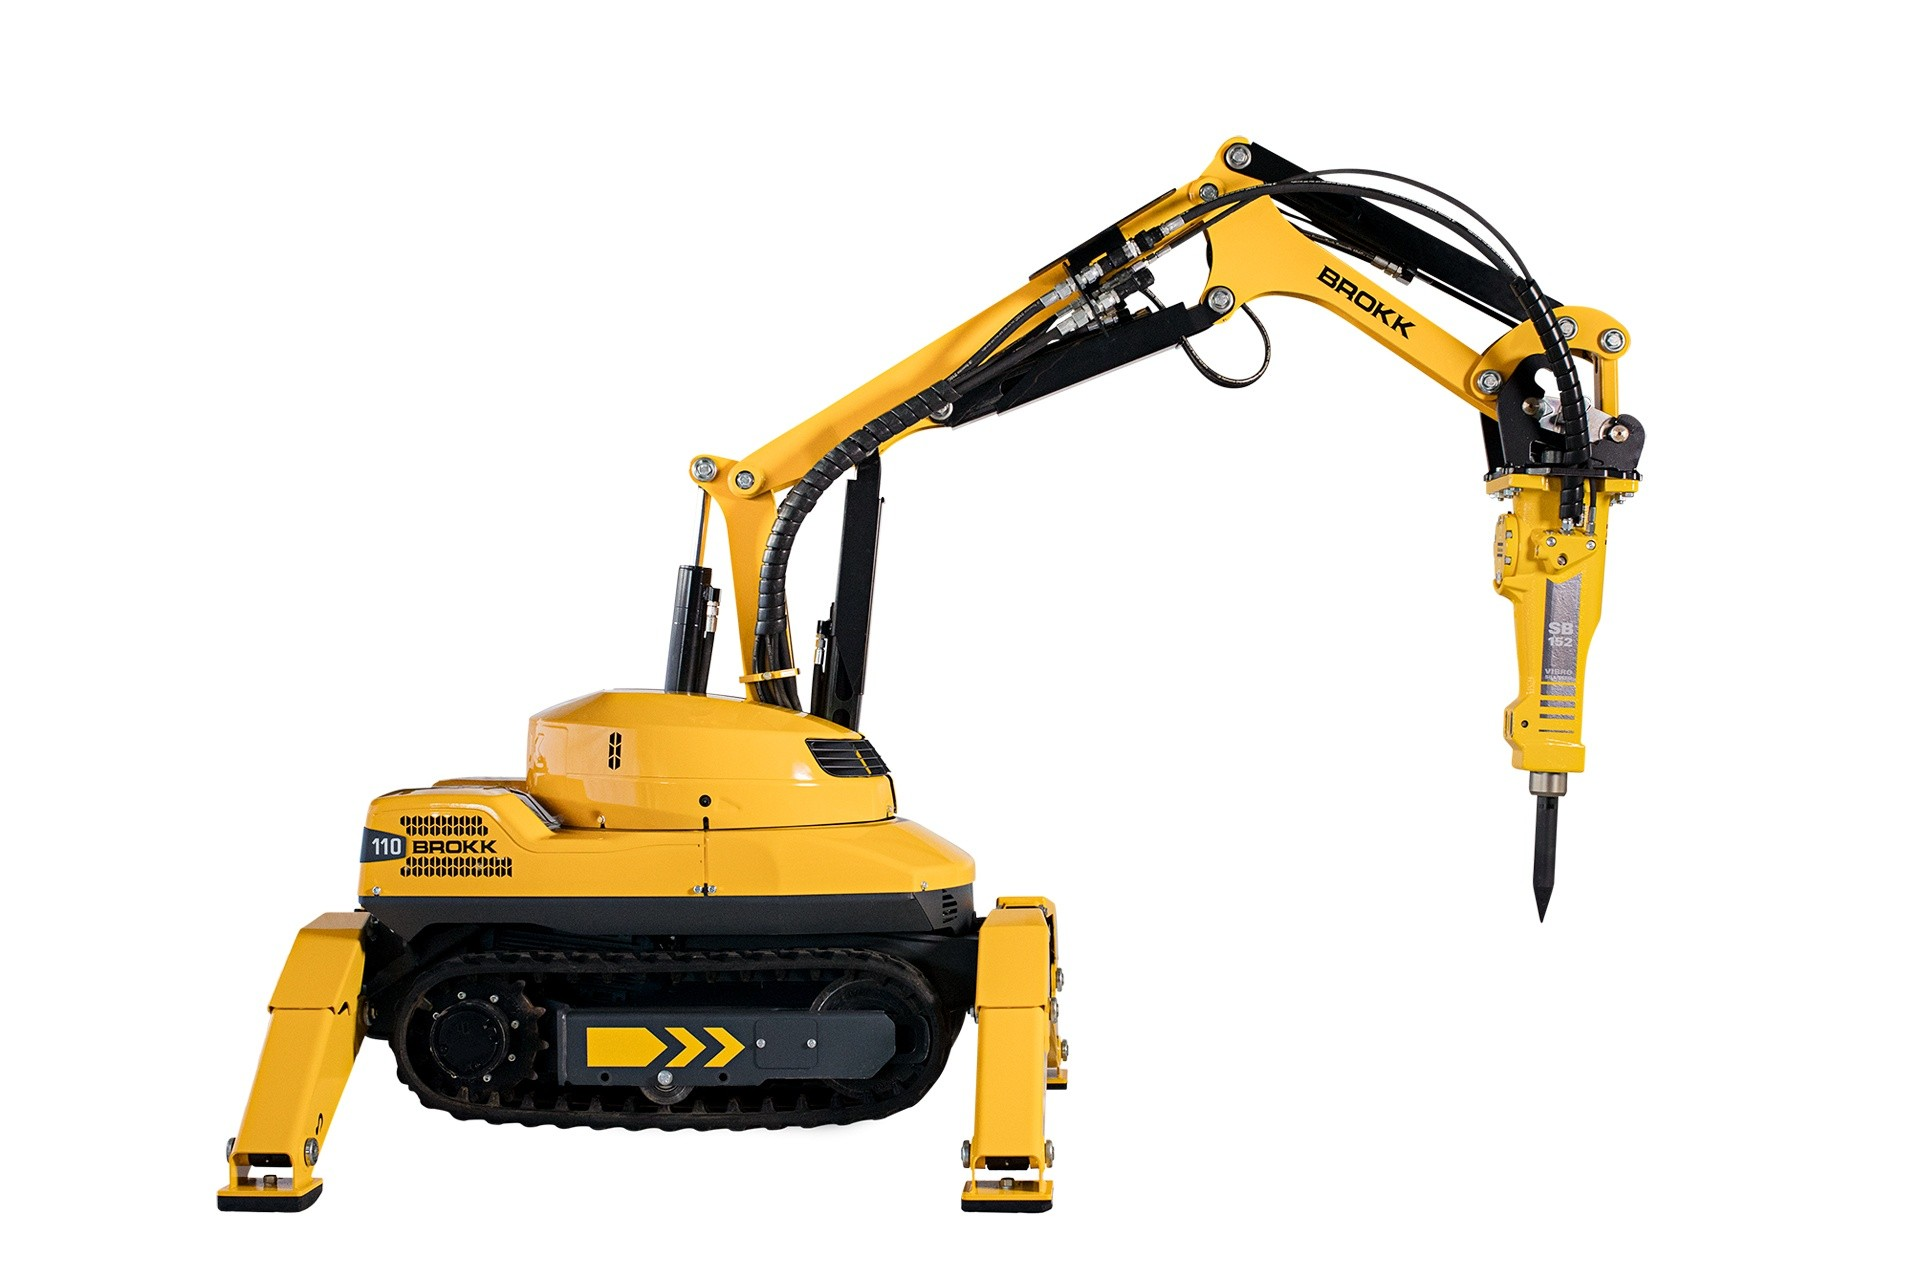 New demolition Robots from Brokk and Top Tec